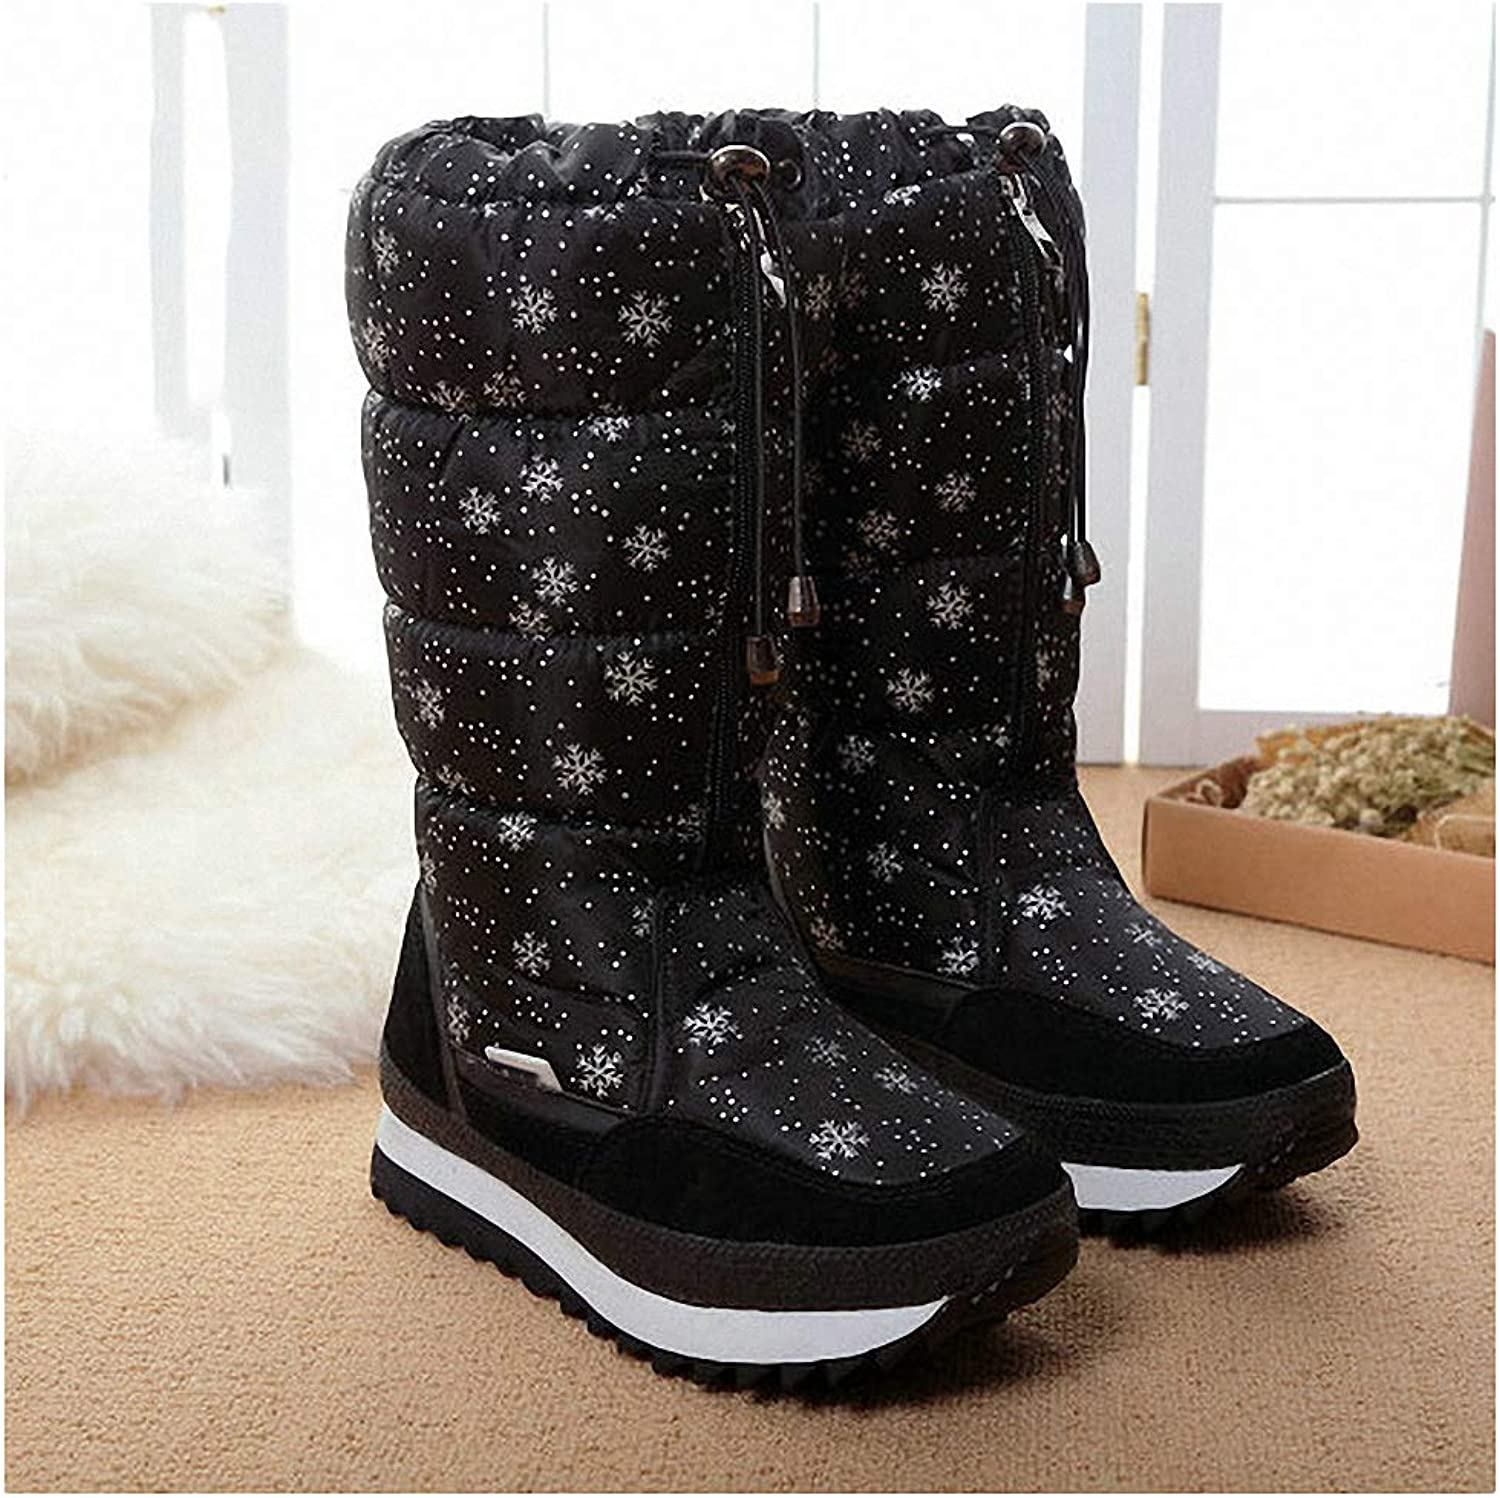 Womens Backpacking Boots Winter Boots High Women Snow Boots Plush Warm shoes Plus Size 35 to Big 42 Easy Wear Girl White Zip shoes Female Hot Boots